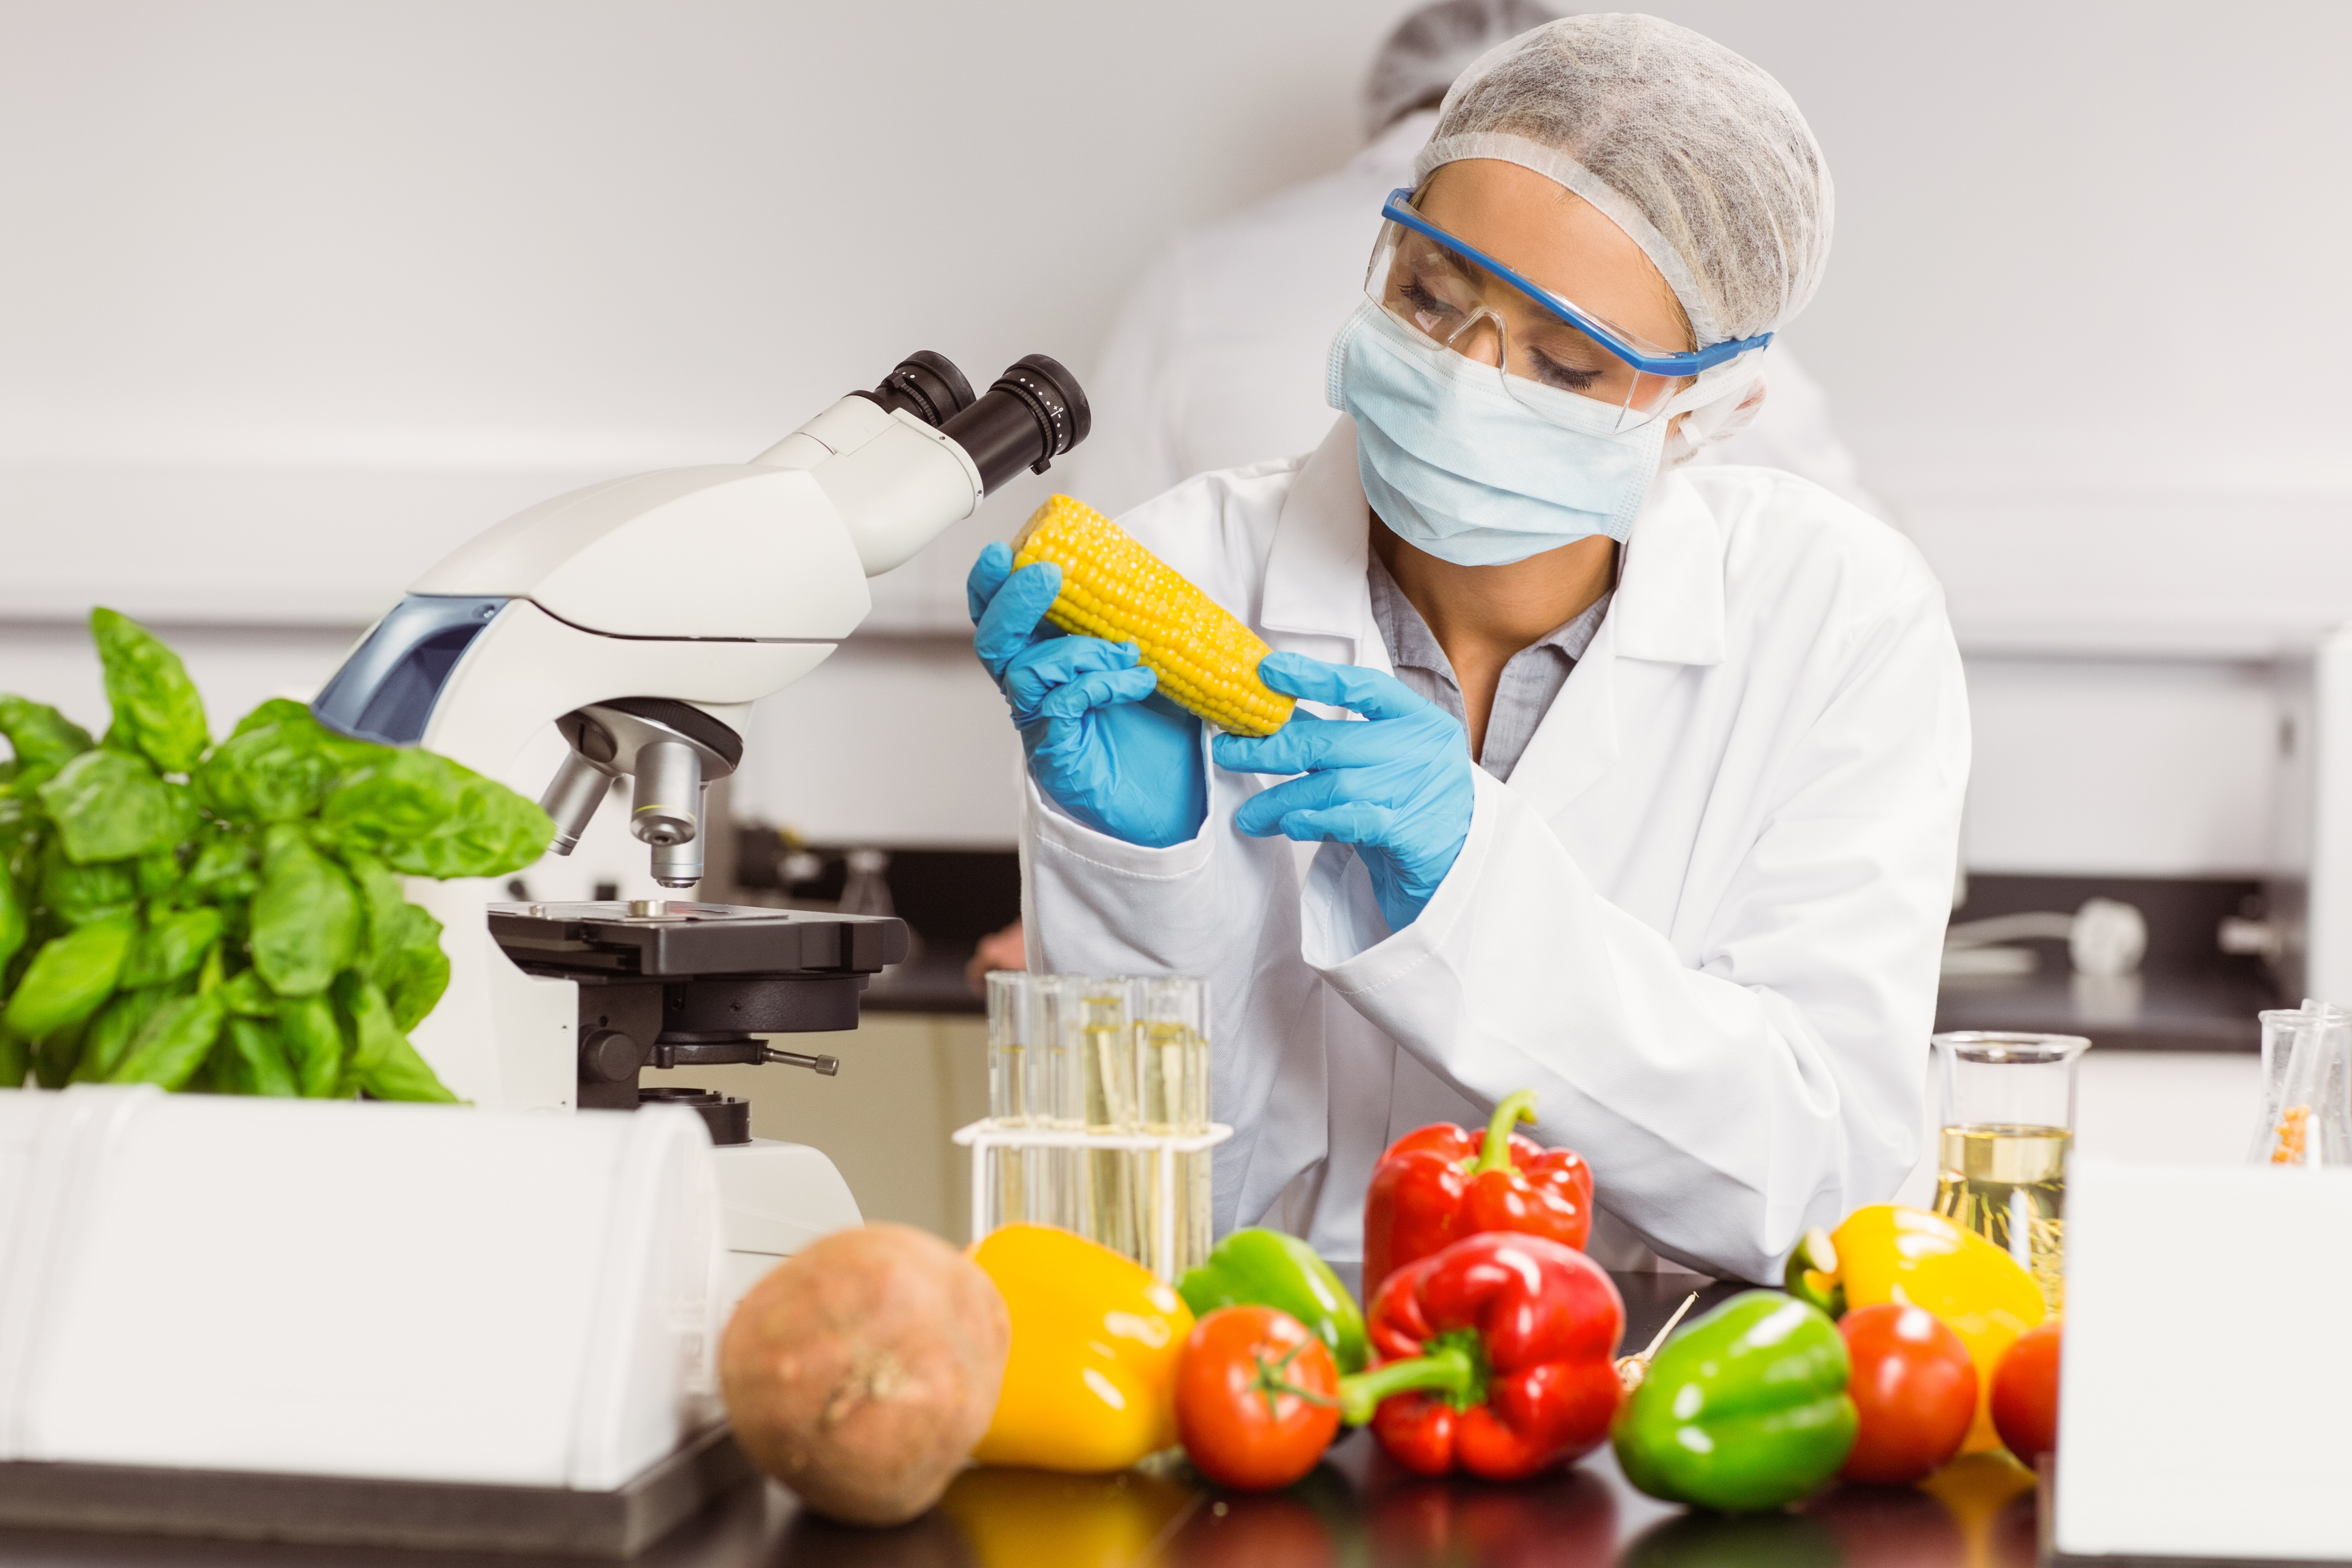 NUTRITIONAL SCIENCE/BIOLOGY